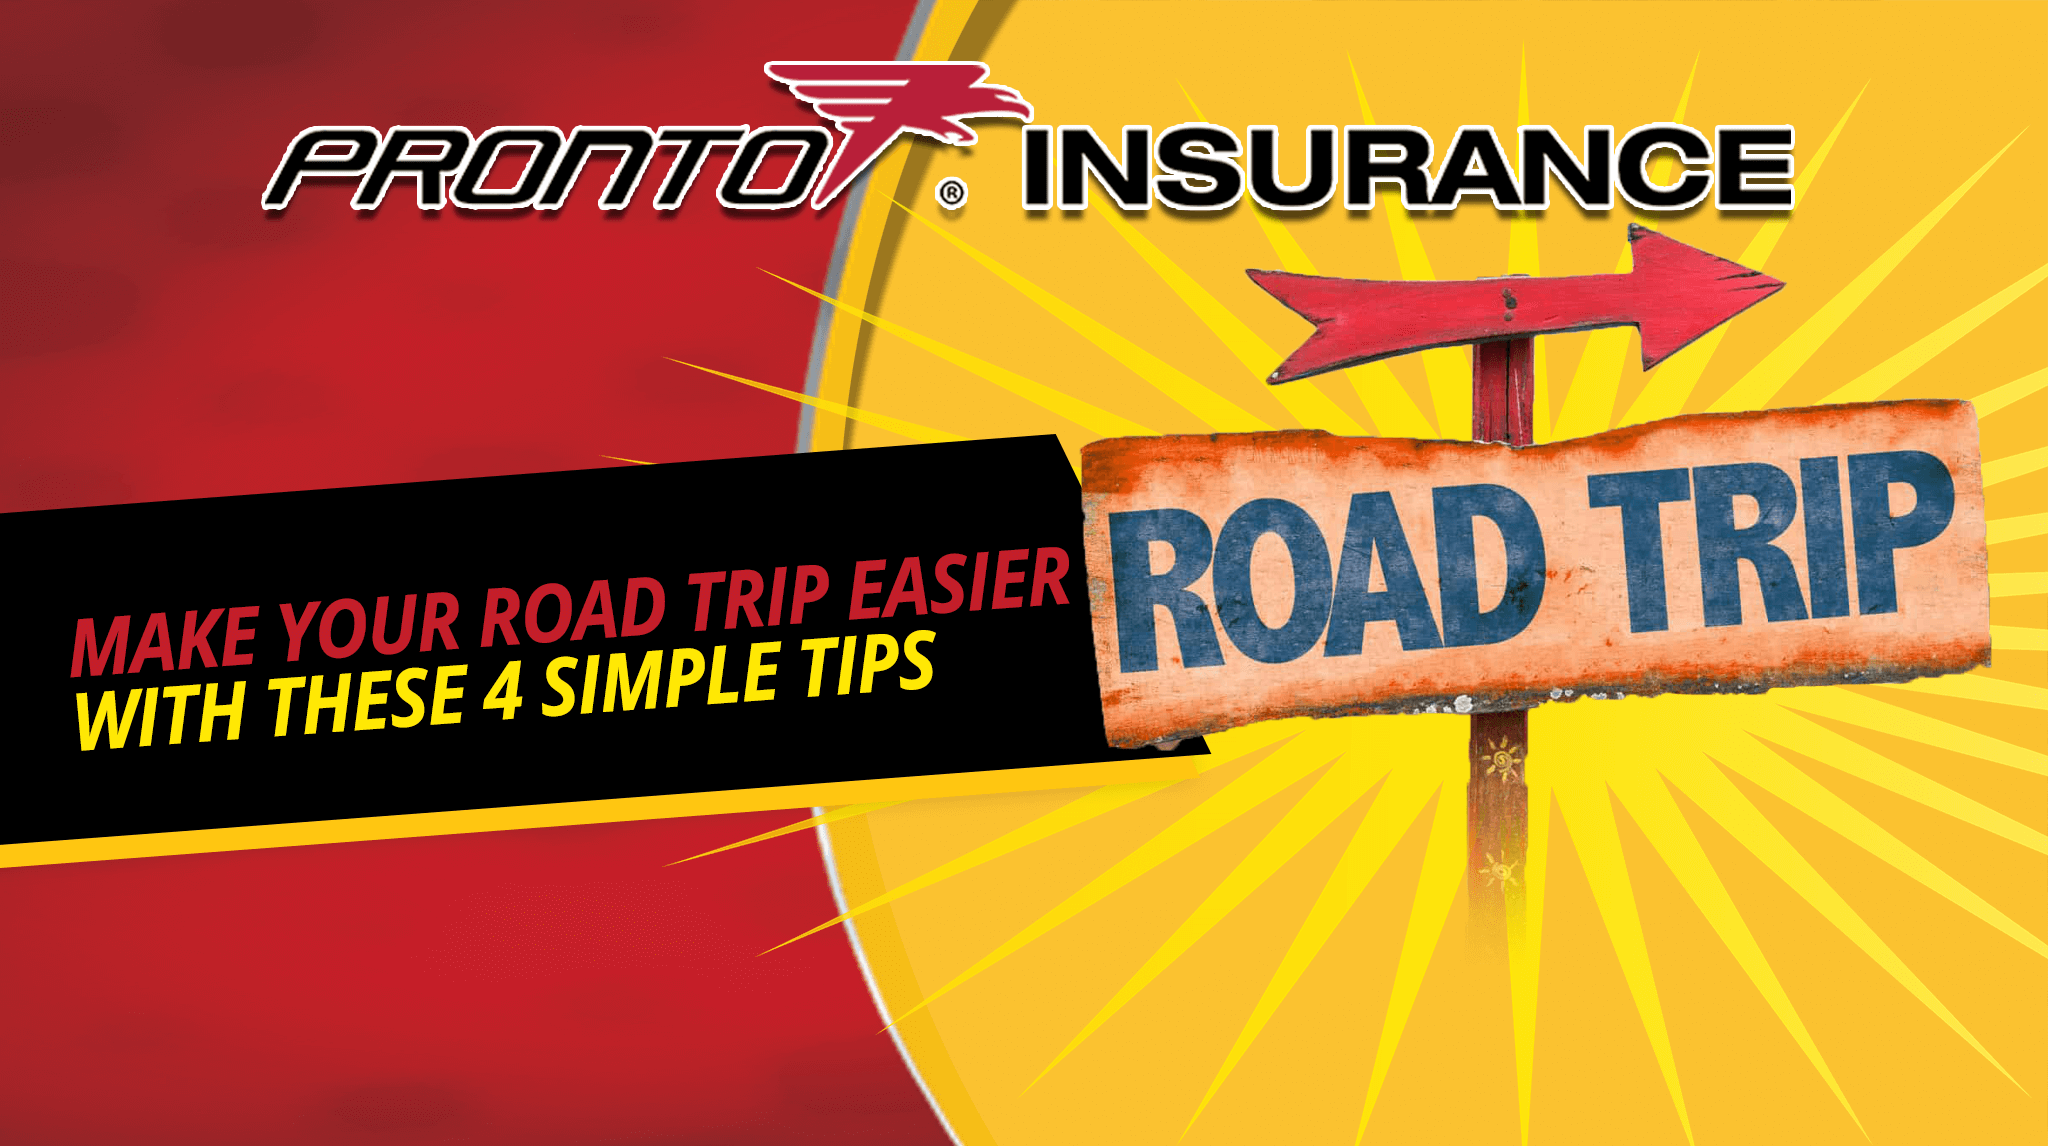 Make Your Road Trip Easier with These 4 Simple Tips